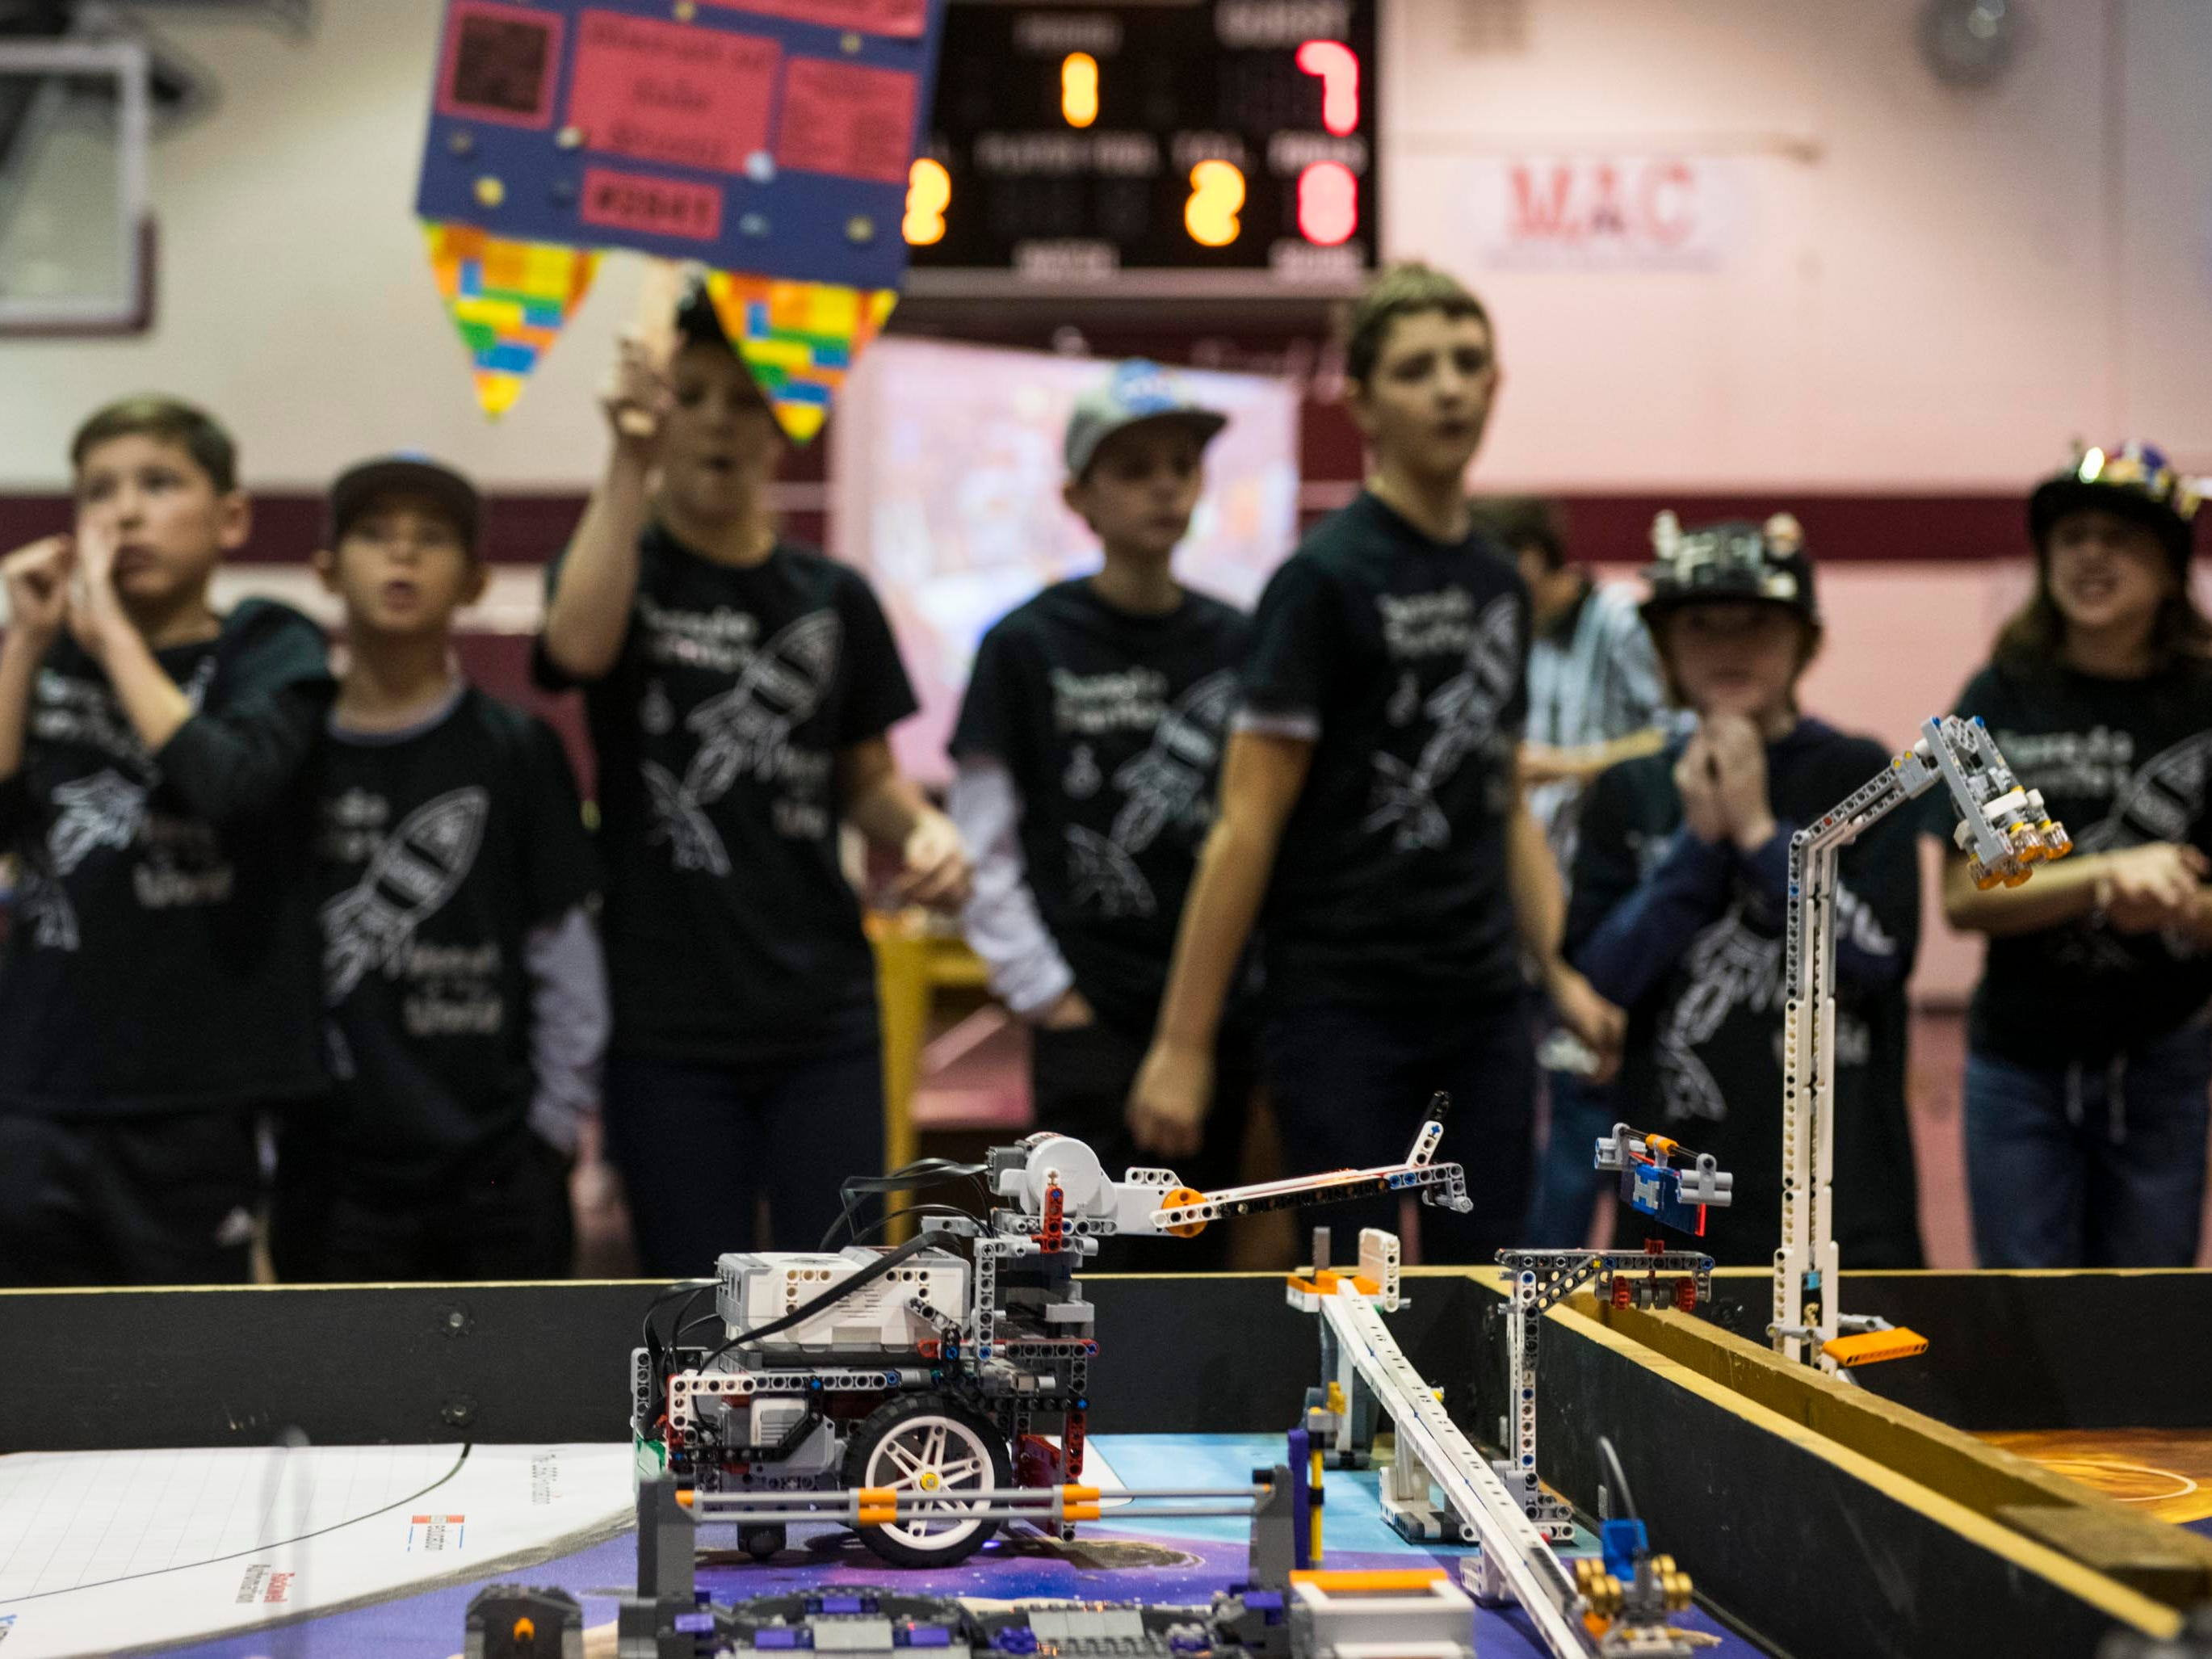 A robot built by the Tuxedo Purritos robotics team moves a solar panel piece during a competitive run.